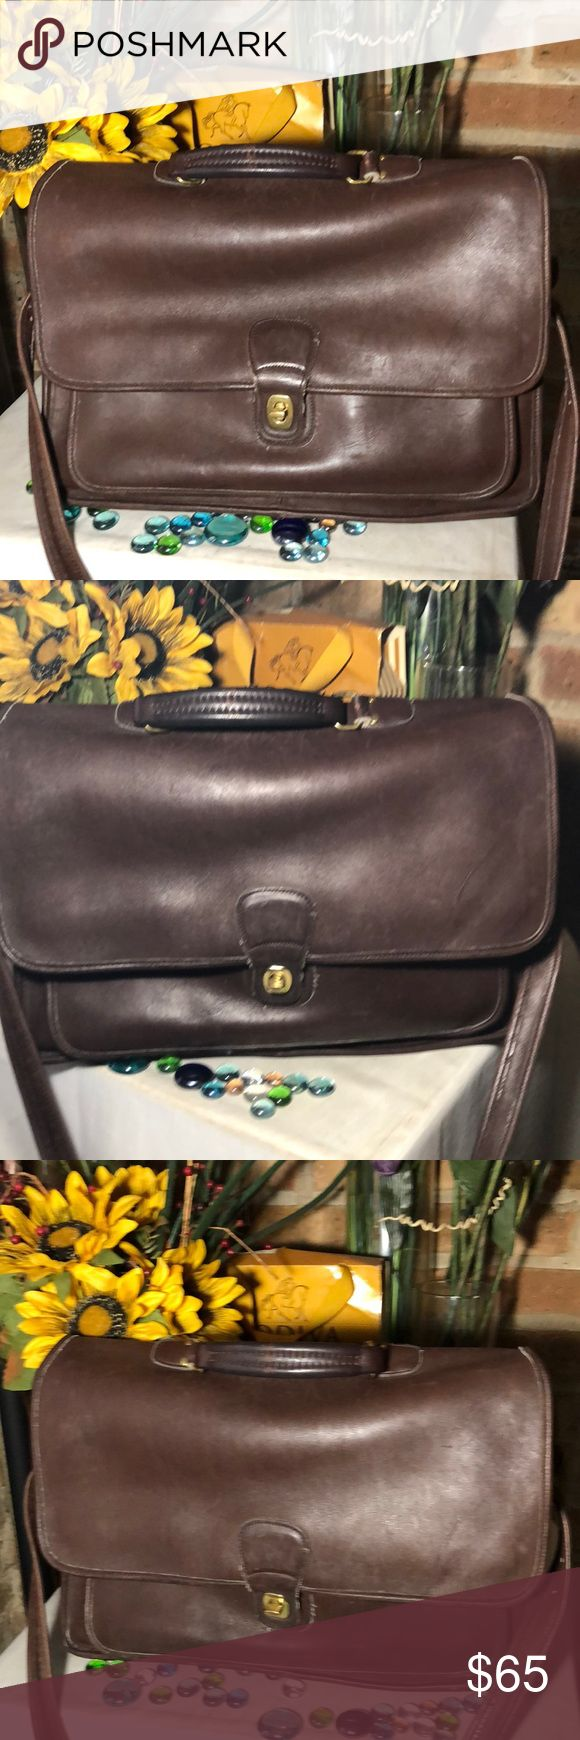 Coach Briefcase Authentic Coach- 12x16- genuine leather- good condition- Very roomy fir tablets & documents- dark brown. Coach Bags Laptop Bags